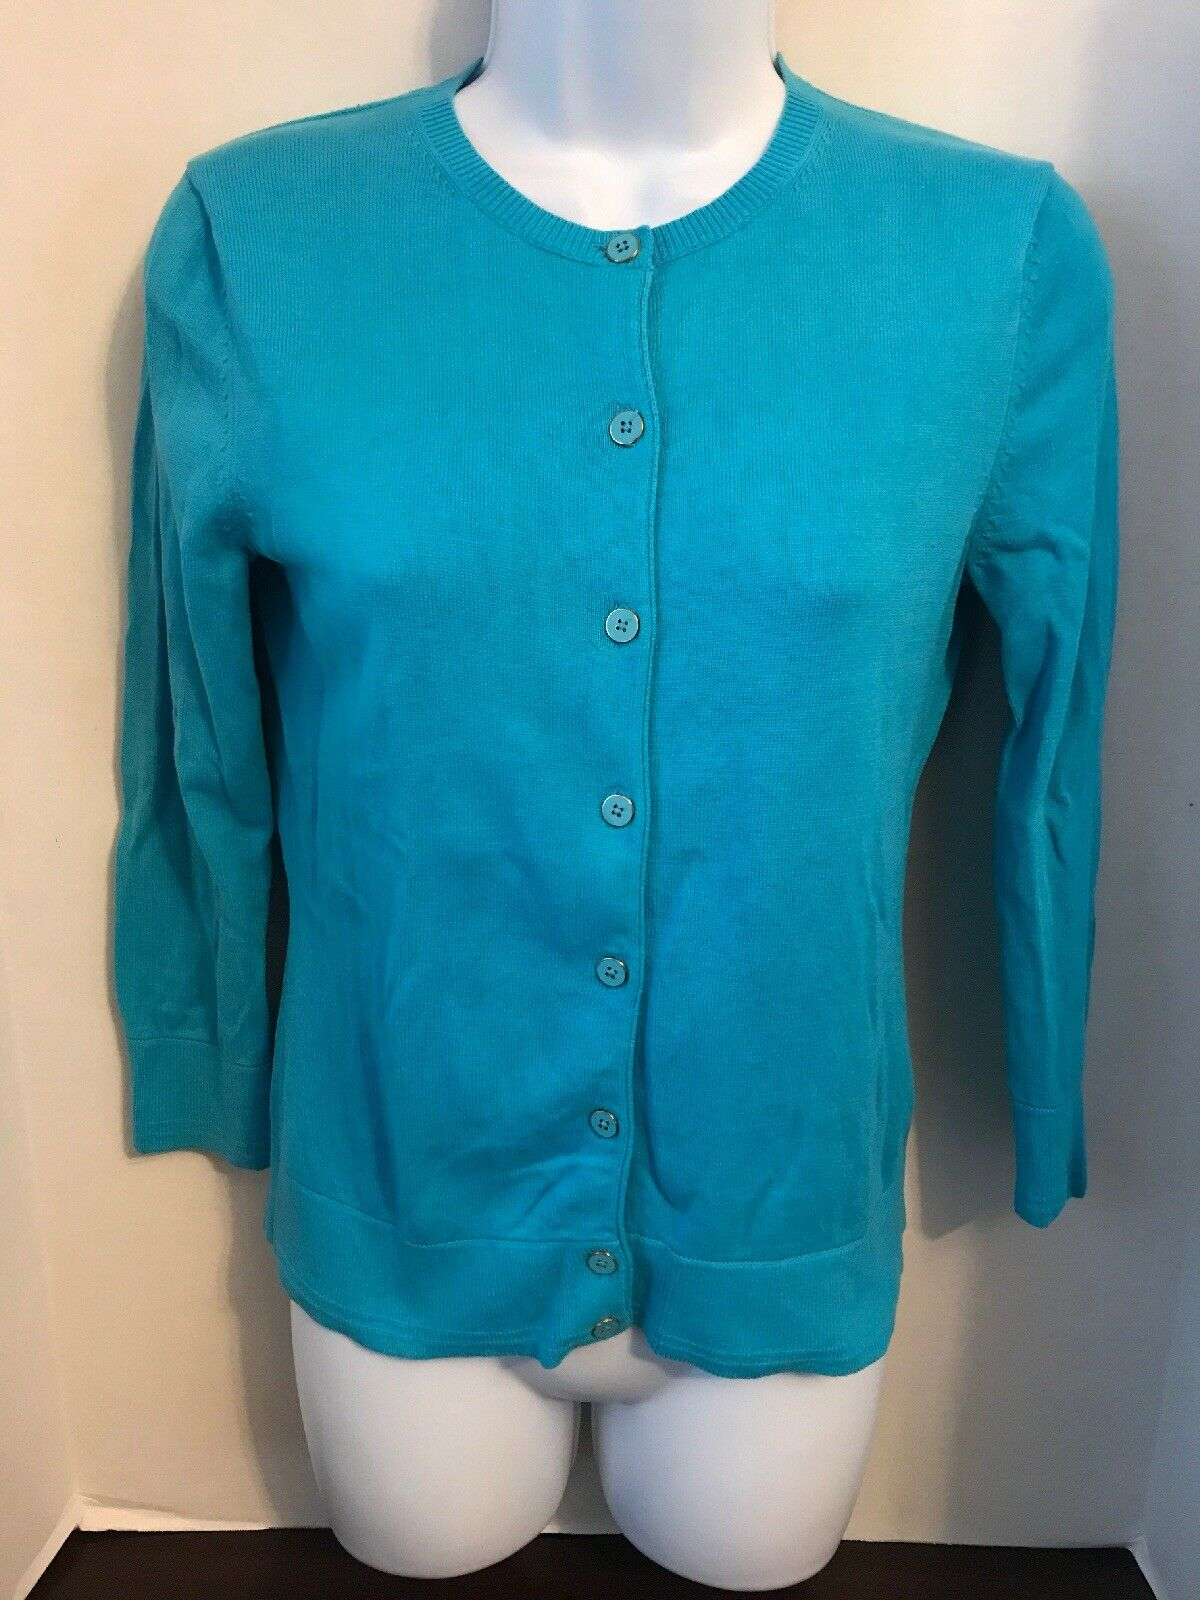 Lilly Pulitzer Cotton Button Front Cardigan Sweater Aqua Aqua Aqua bluee Size XS a96516